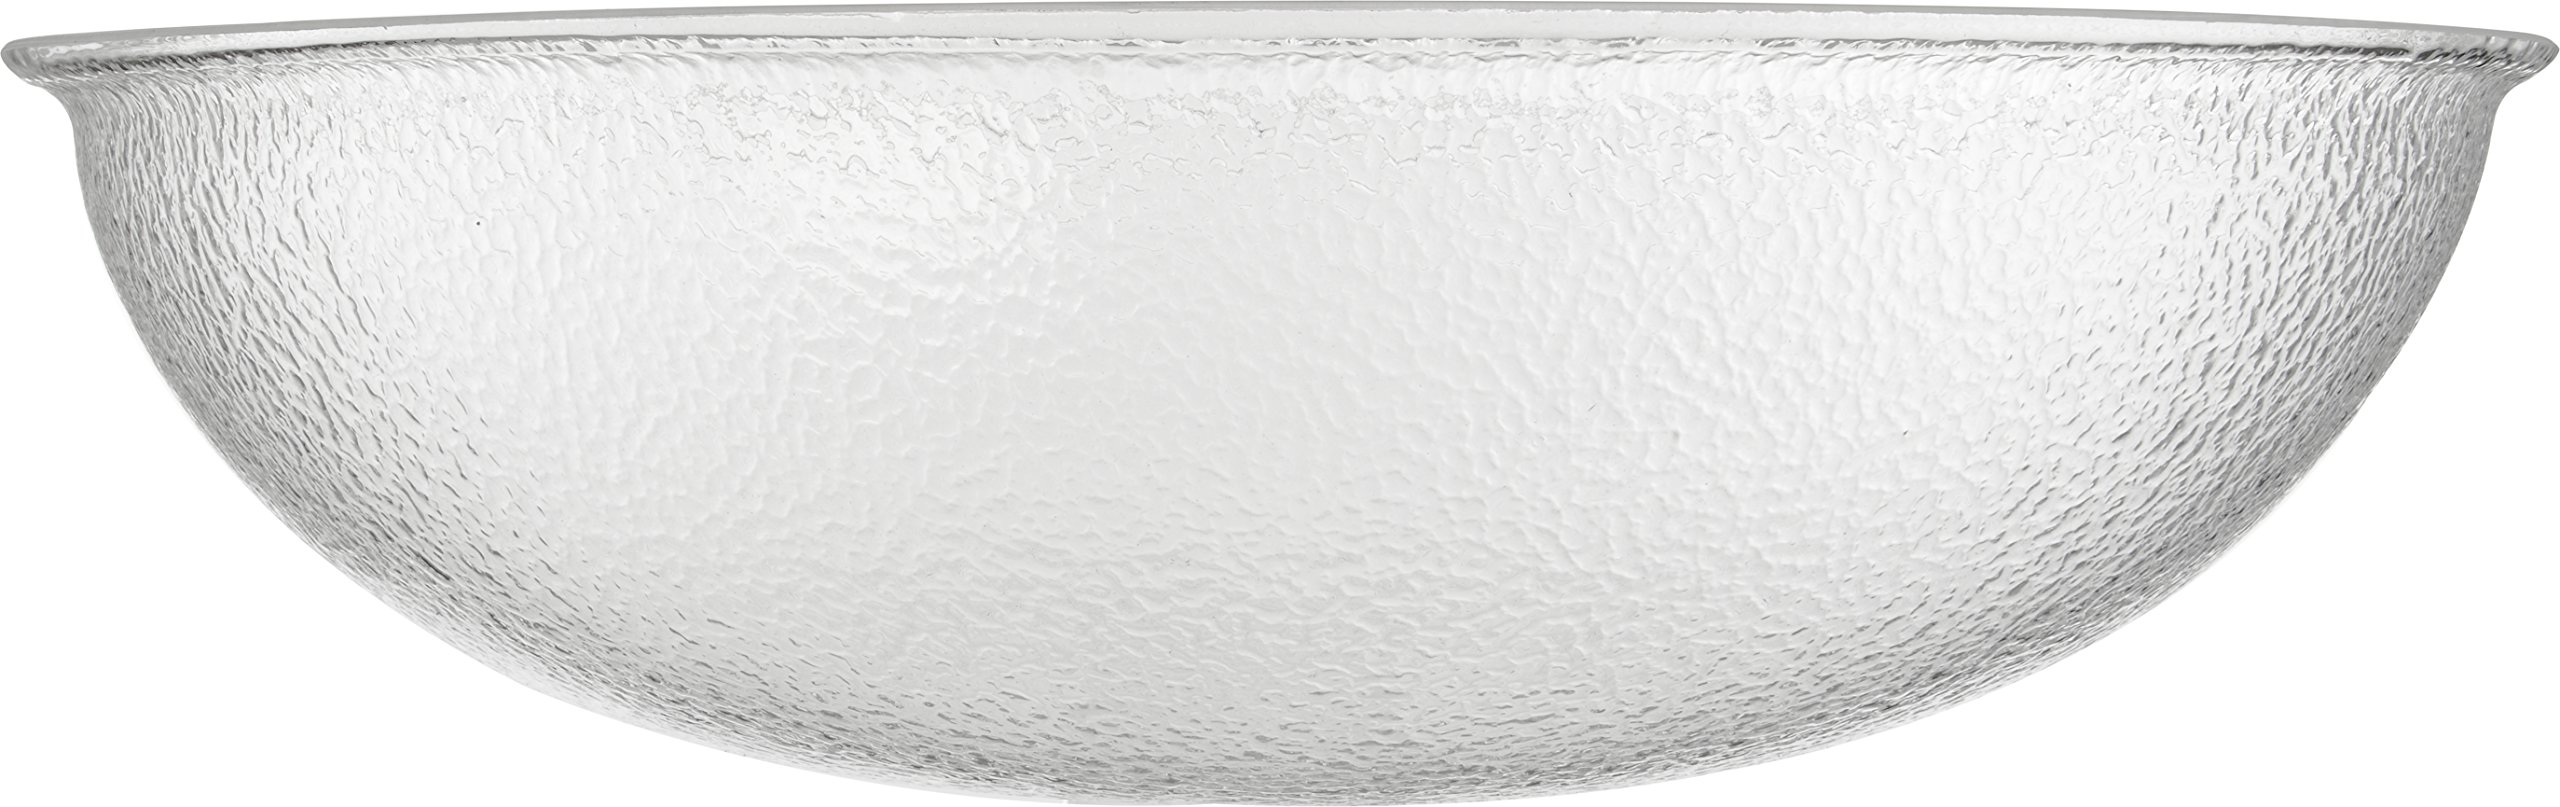 Carlisle SP2207 Acrylic Pebbled Punch Bowl, 24-qt. Capacity, 22'' Diameter x 11.12'' Height, Clear by Carlisle (Image #4)